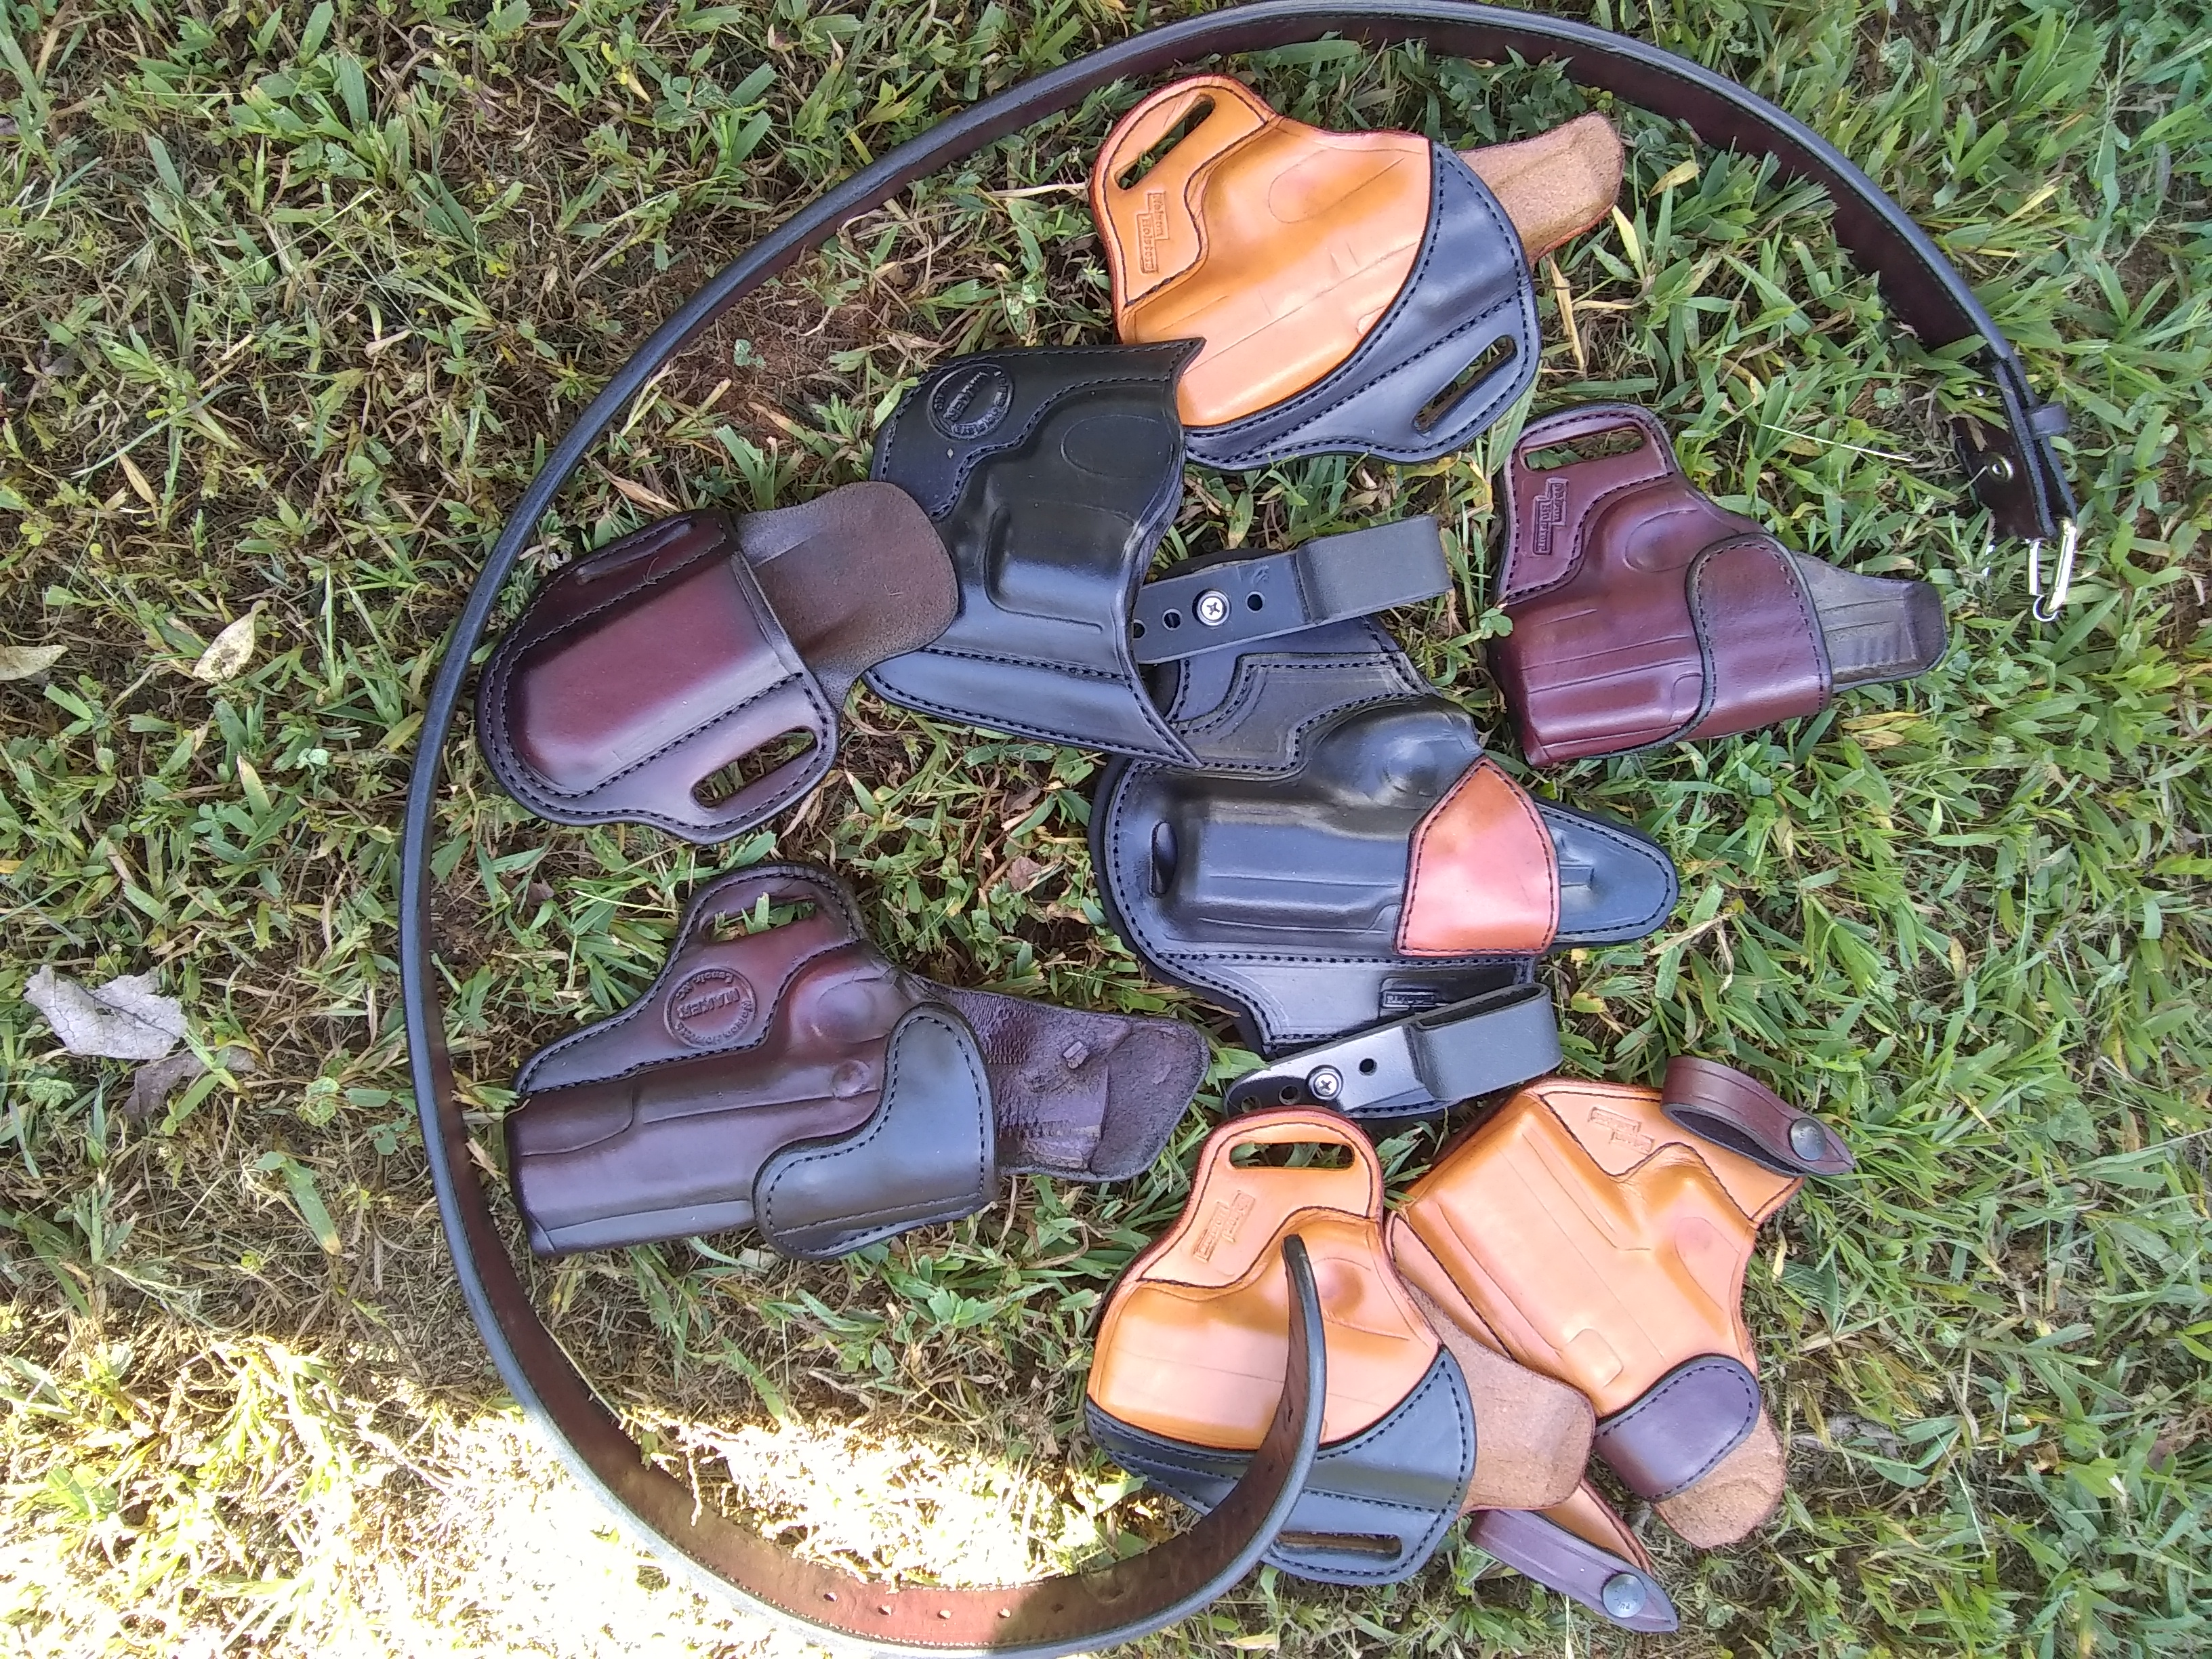 Family pictures of holsters.-img_20191010_131947730.jpg